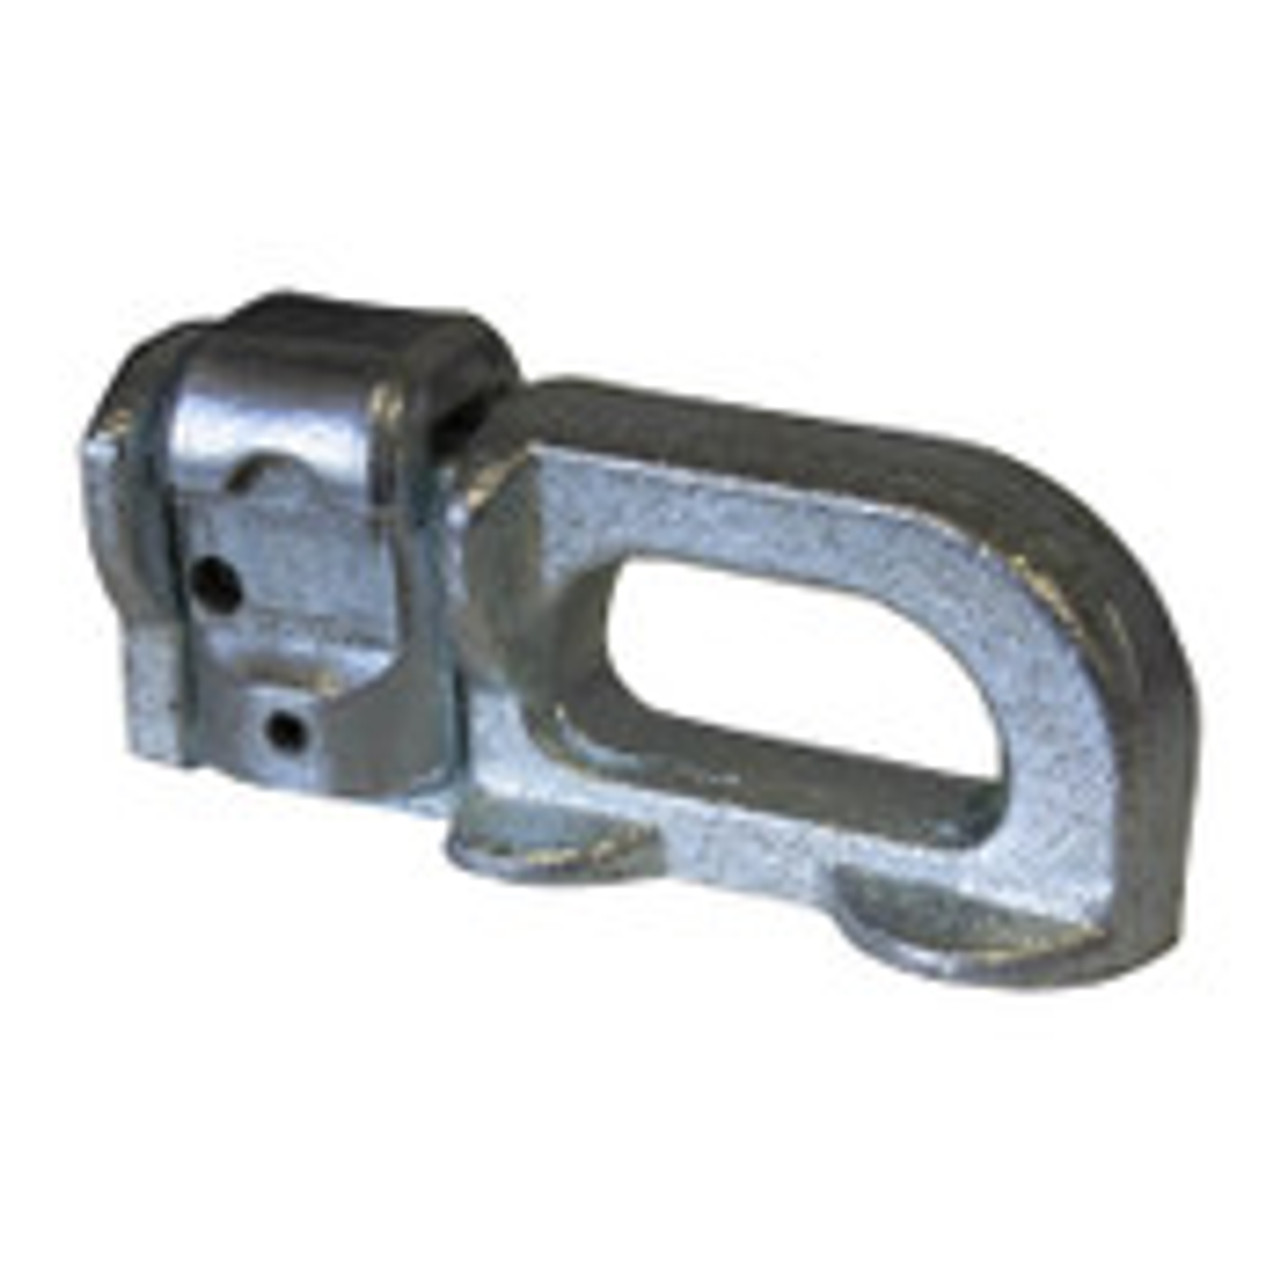 The L track double stud fitting is one of the strongest fittings available for securing into L track. With the many uses of the L track, this fitting can be quickly snapped into the track to provide you the anchor point you need to connect your tie down straps too.